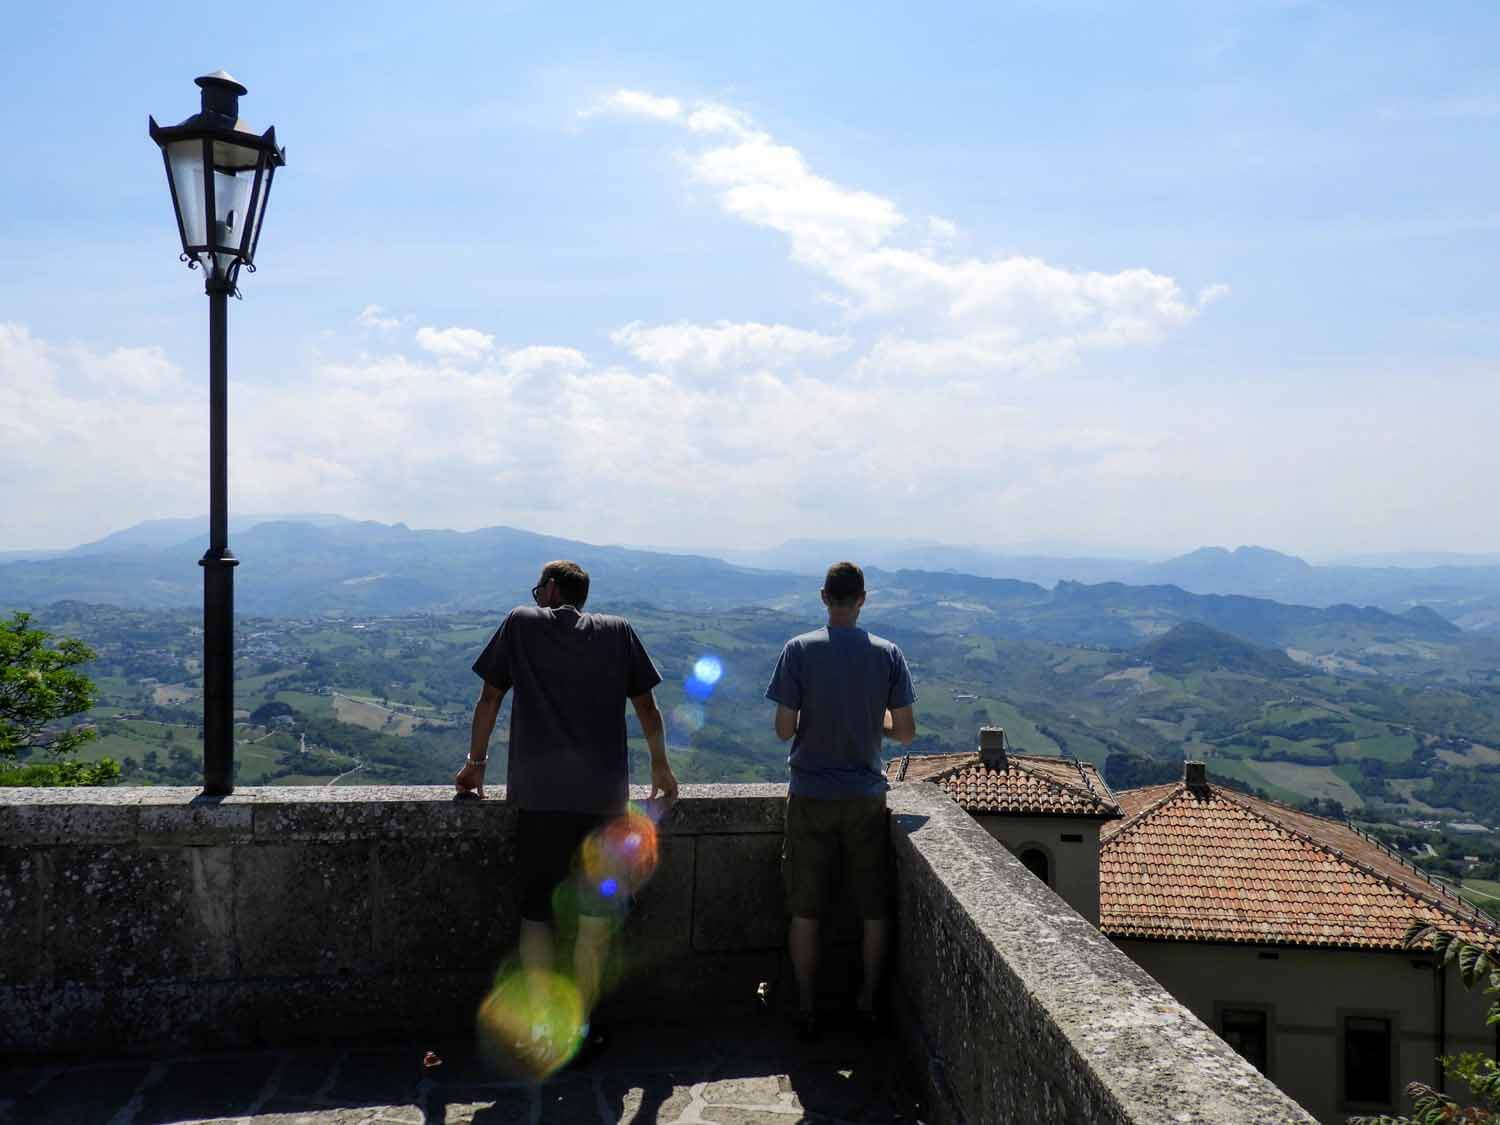 san-marino-micro-nation-viewpoint-summit-peak.jpg